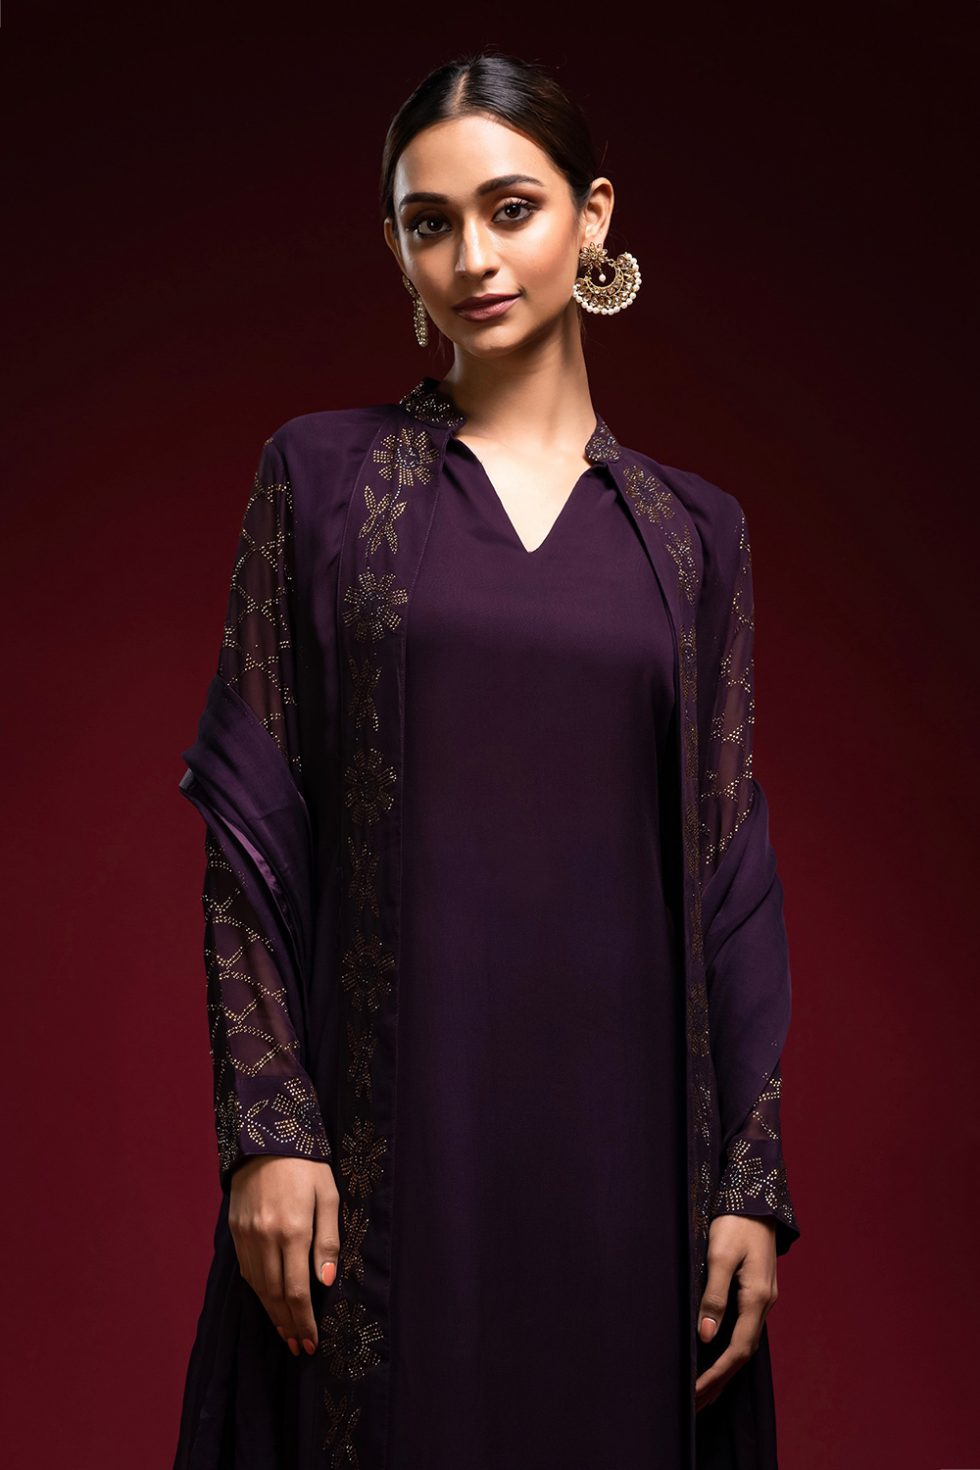 Deep purple salwar set with a self coloured churidar paired with a matching jacket with gold embellishments and a dupatta.